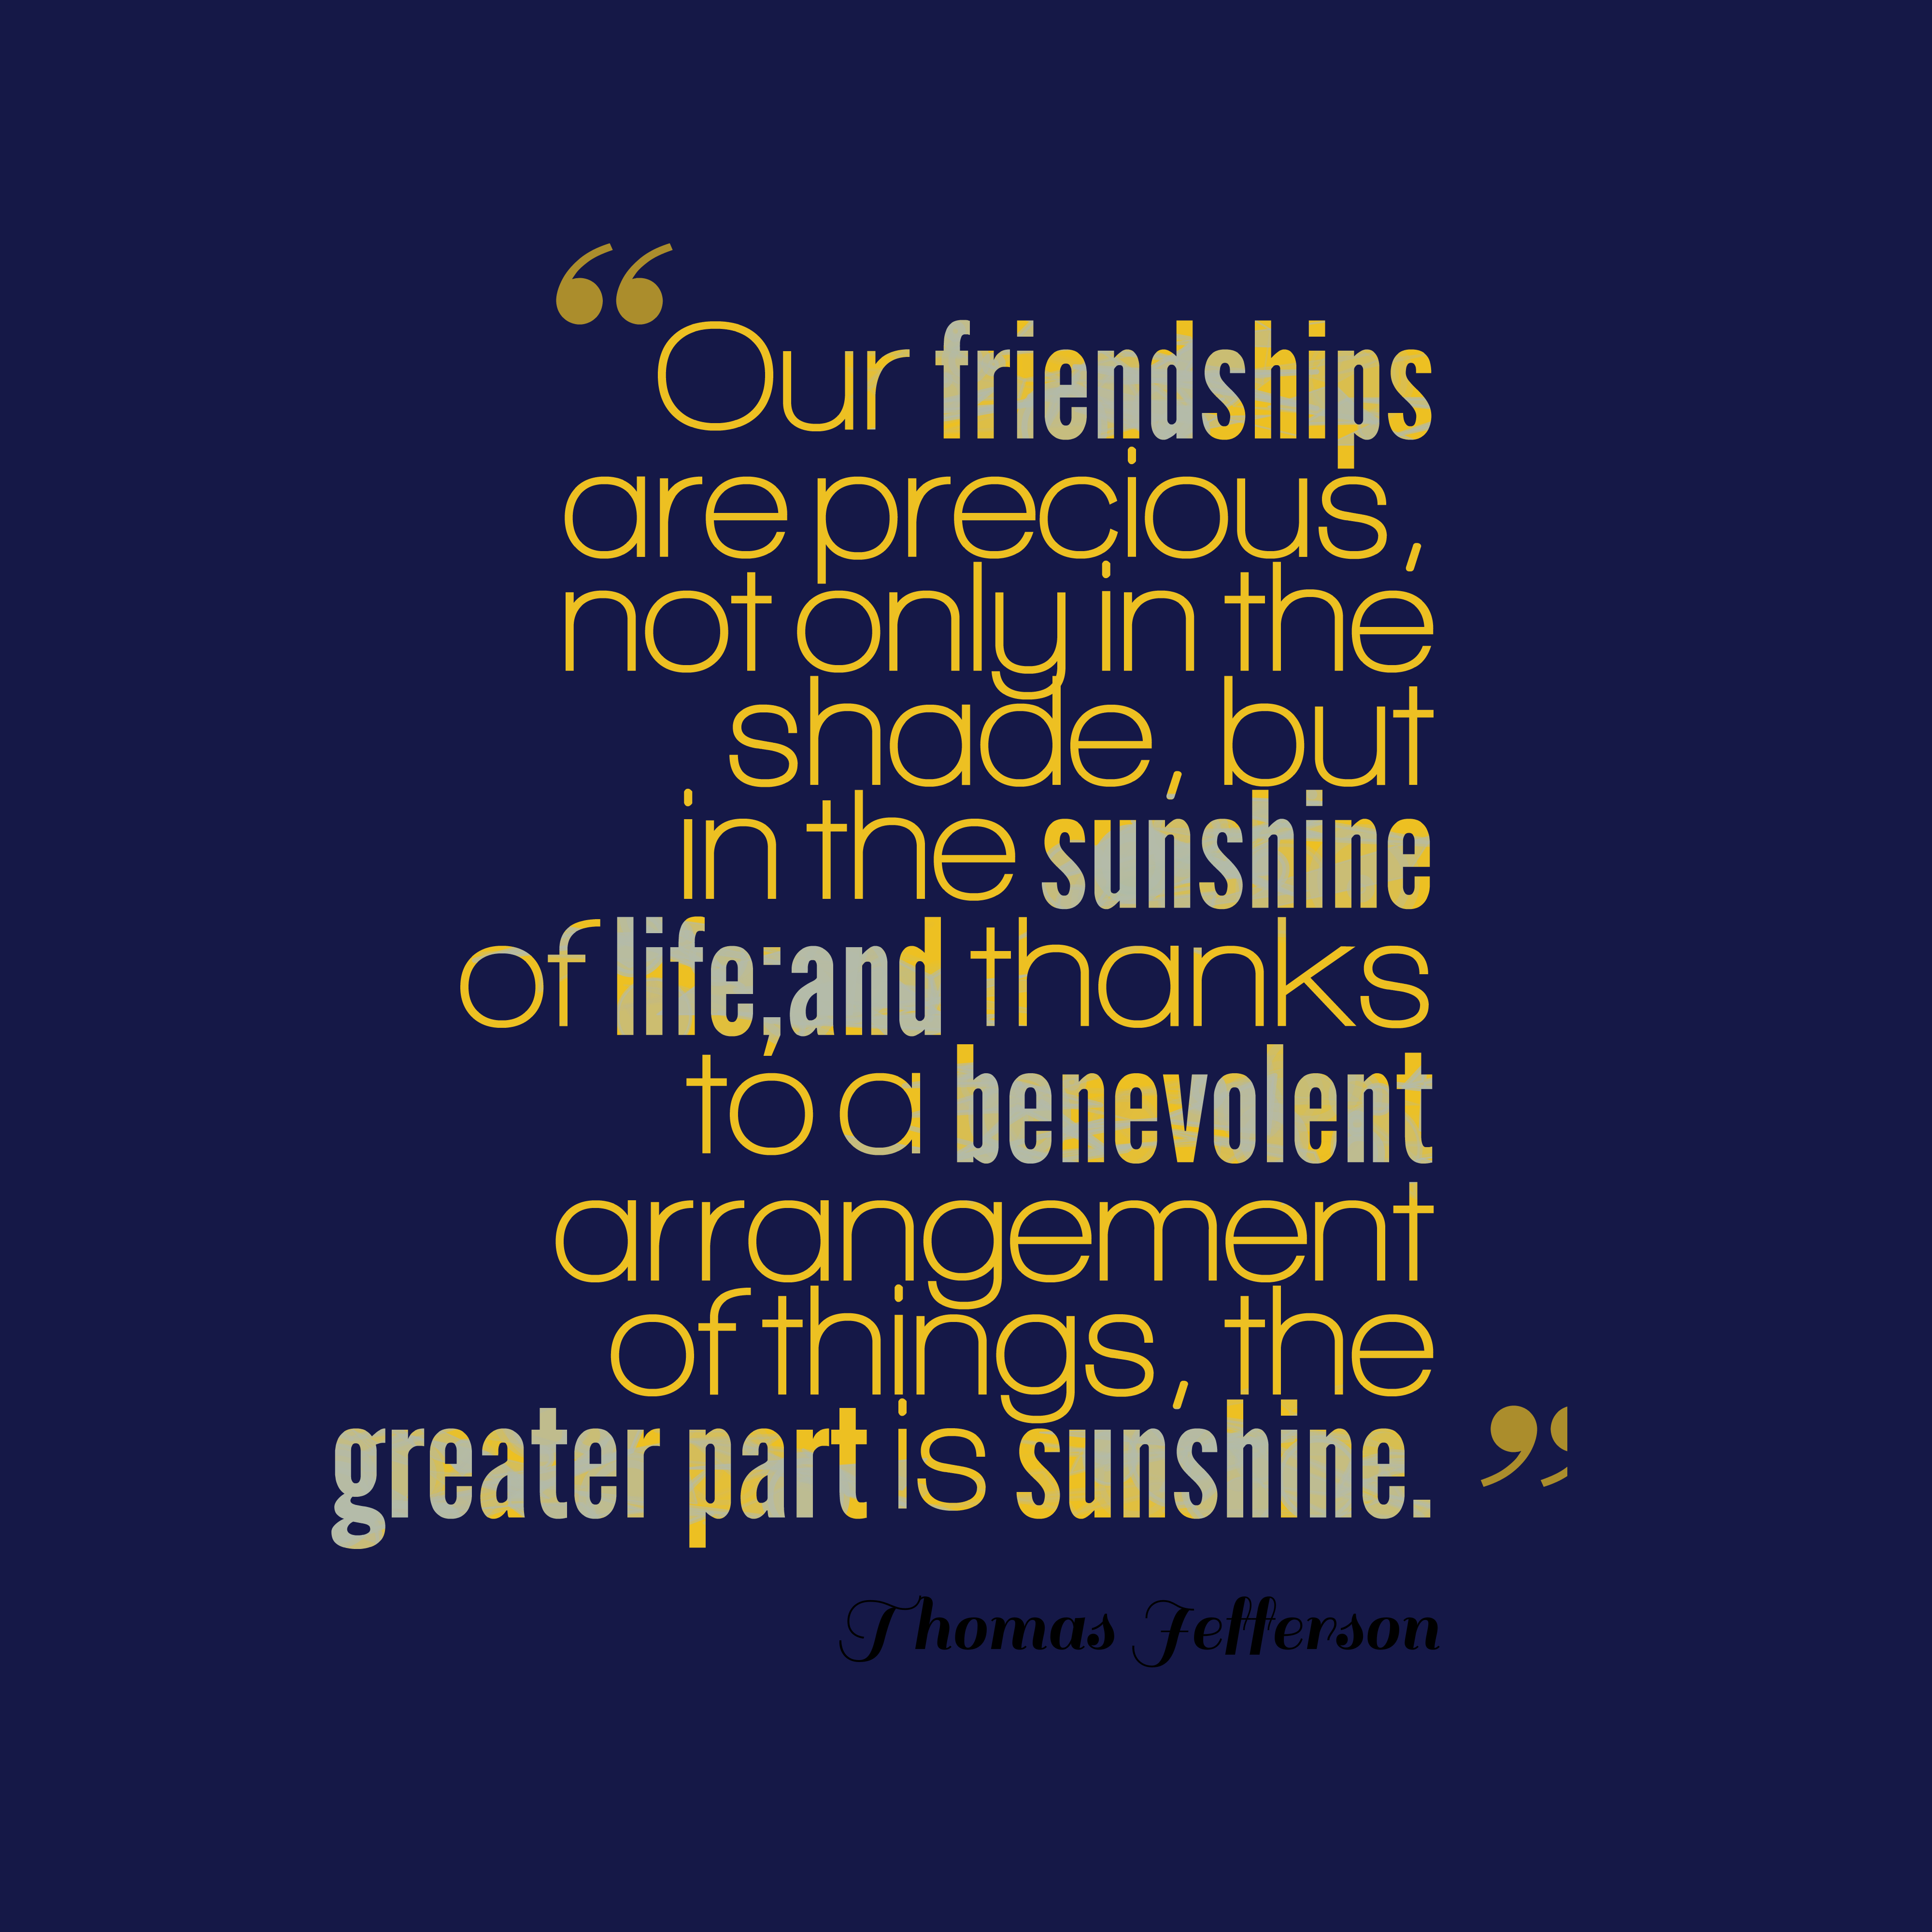 Quotes image of Our friendships are precious, not only in the shade, but in the sunshine of life;and thanks to a benevolent arrangement of things, the greater part is sunshine.